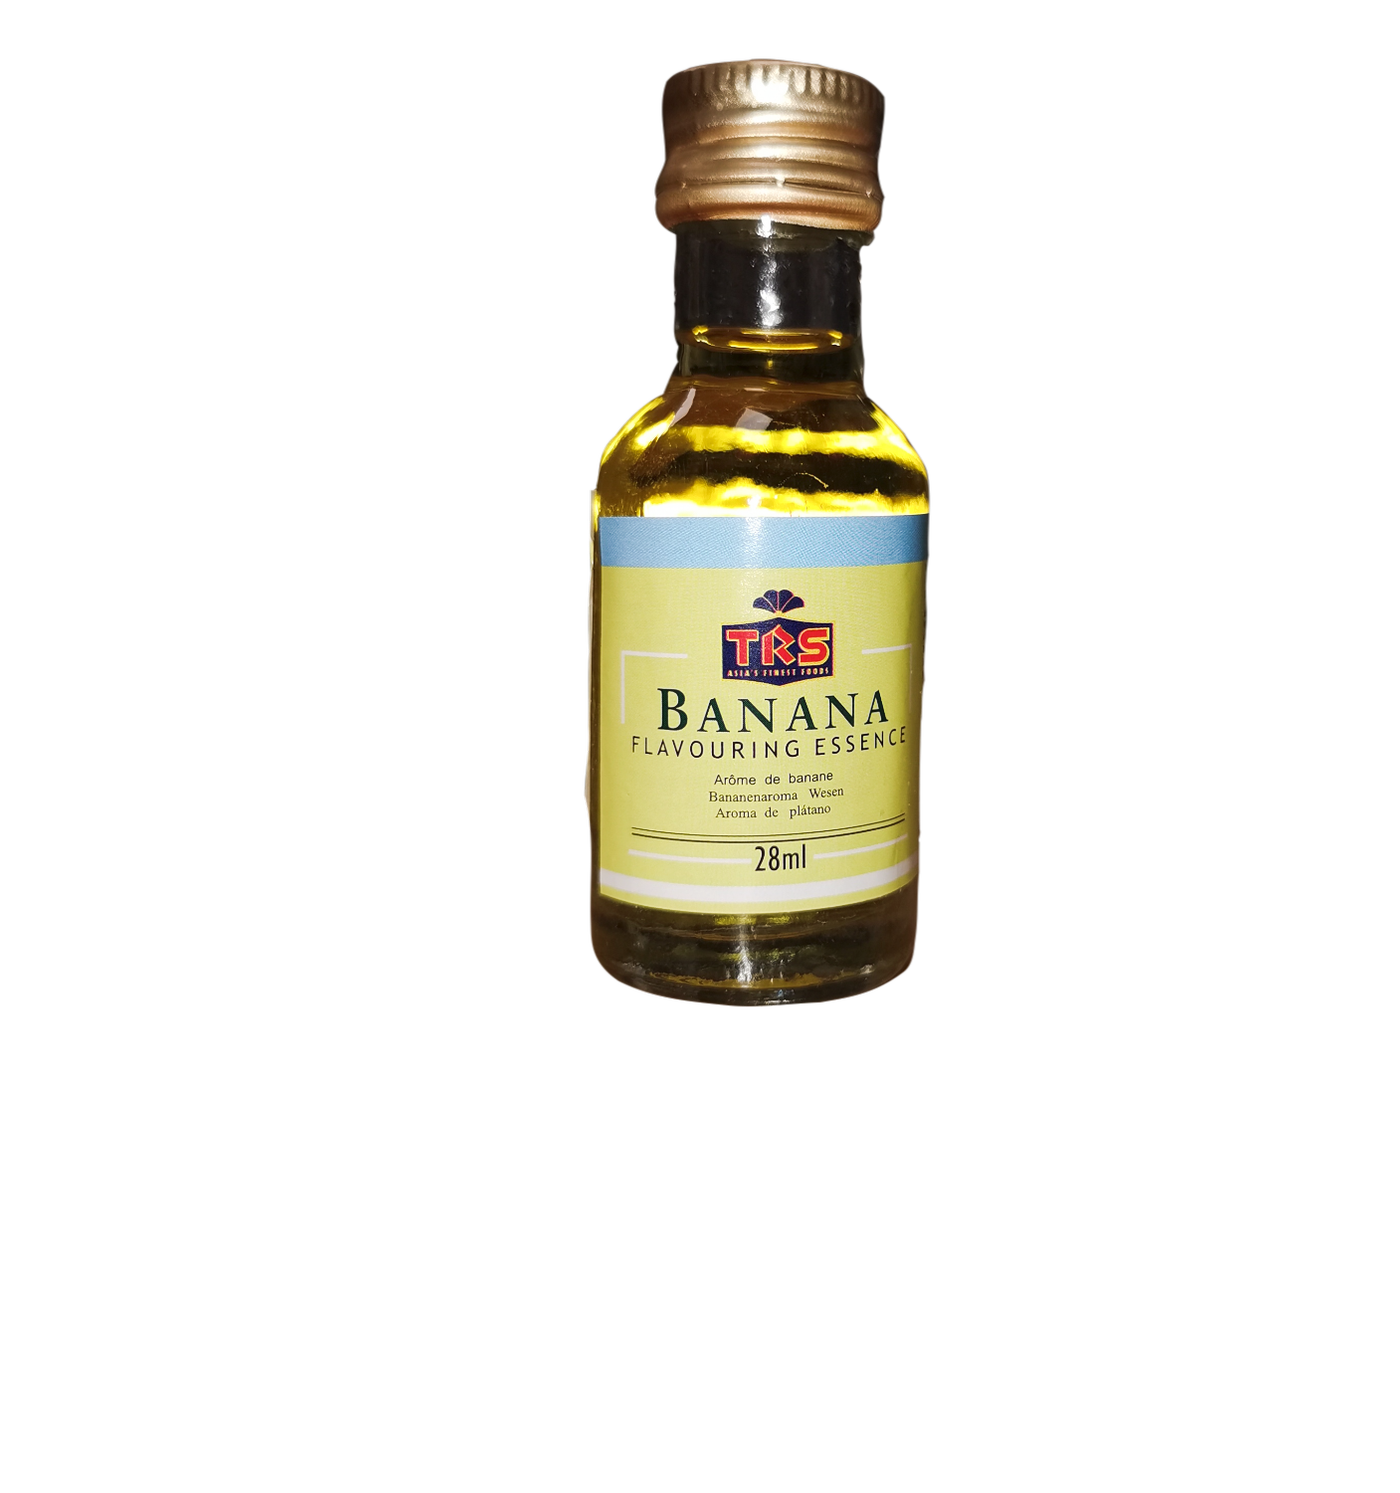 TRS Banana Flavouring Essence